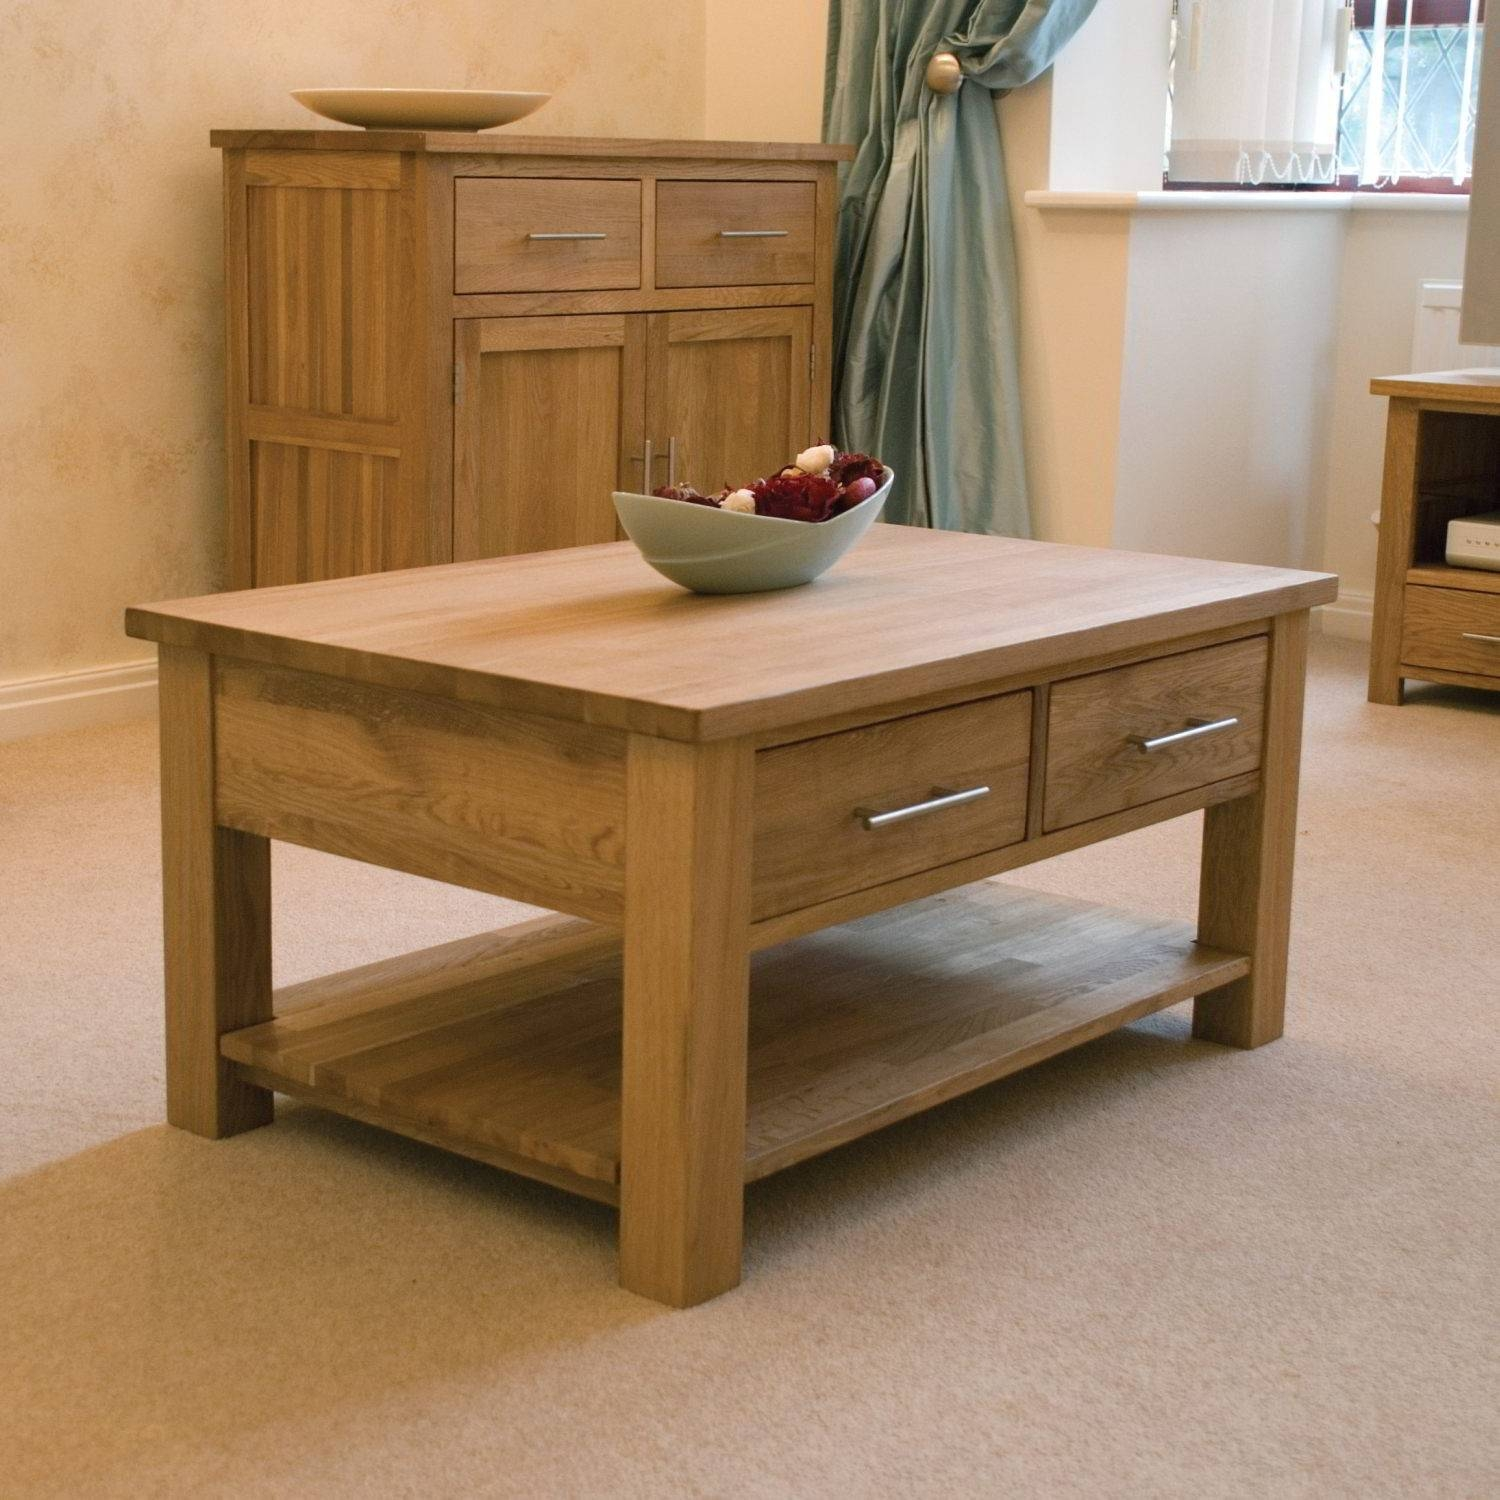 Solid Oak Coffee Table And End Tables | Coffee Tables Decoration for Oak And Cream Coffee Tables (Image 26 of 30)